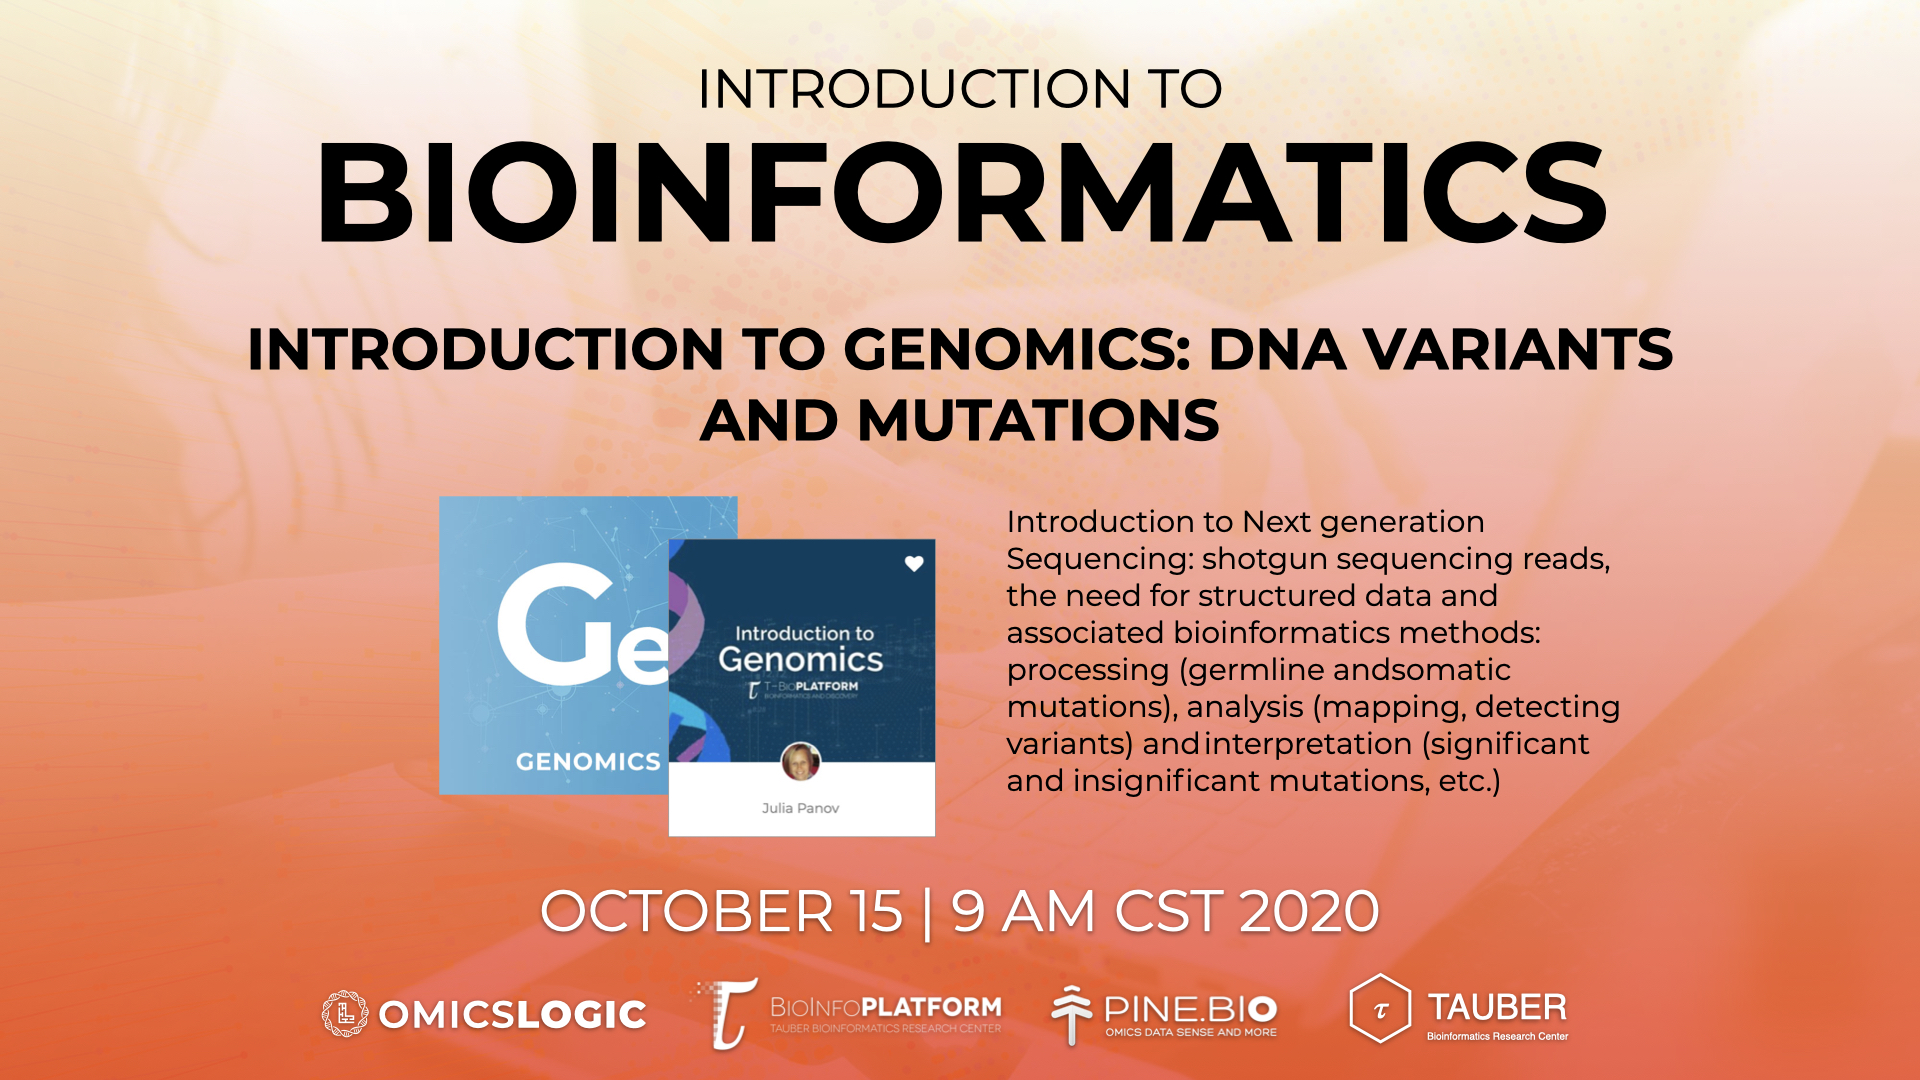 Introduction to bioinformatics - Session 2